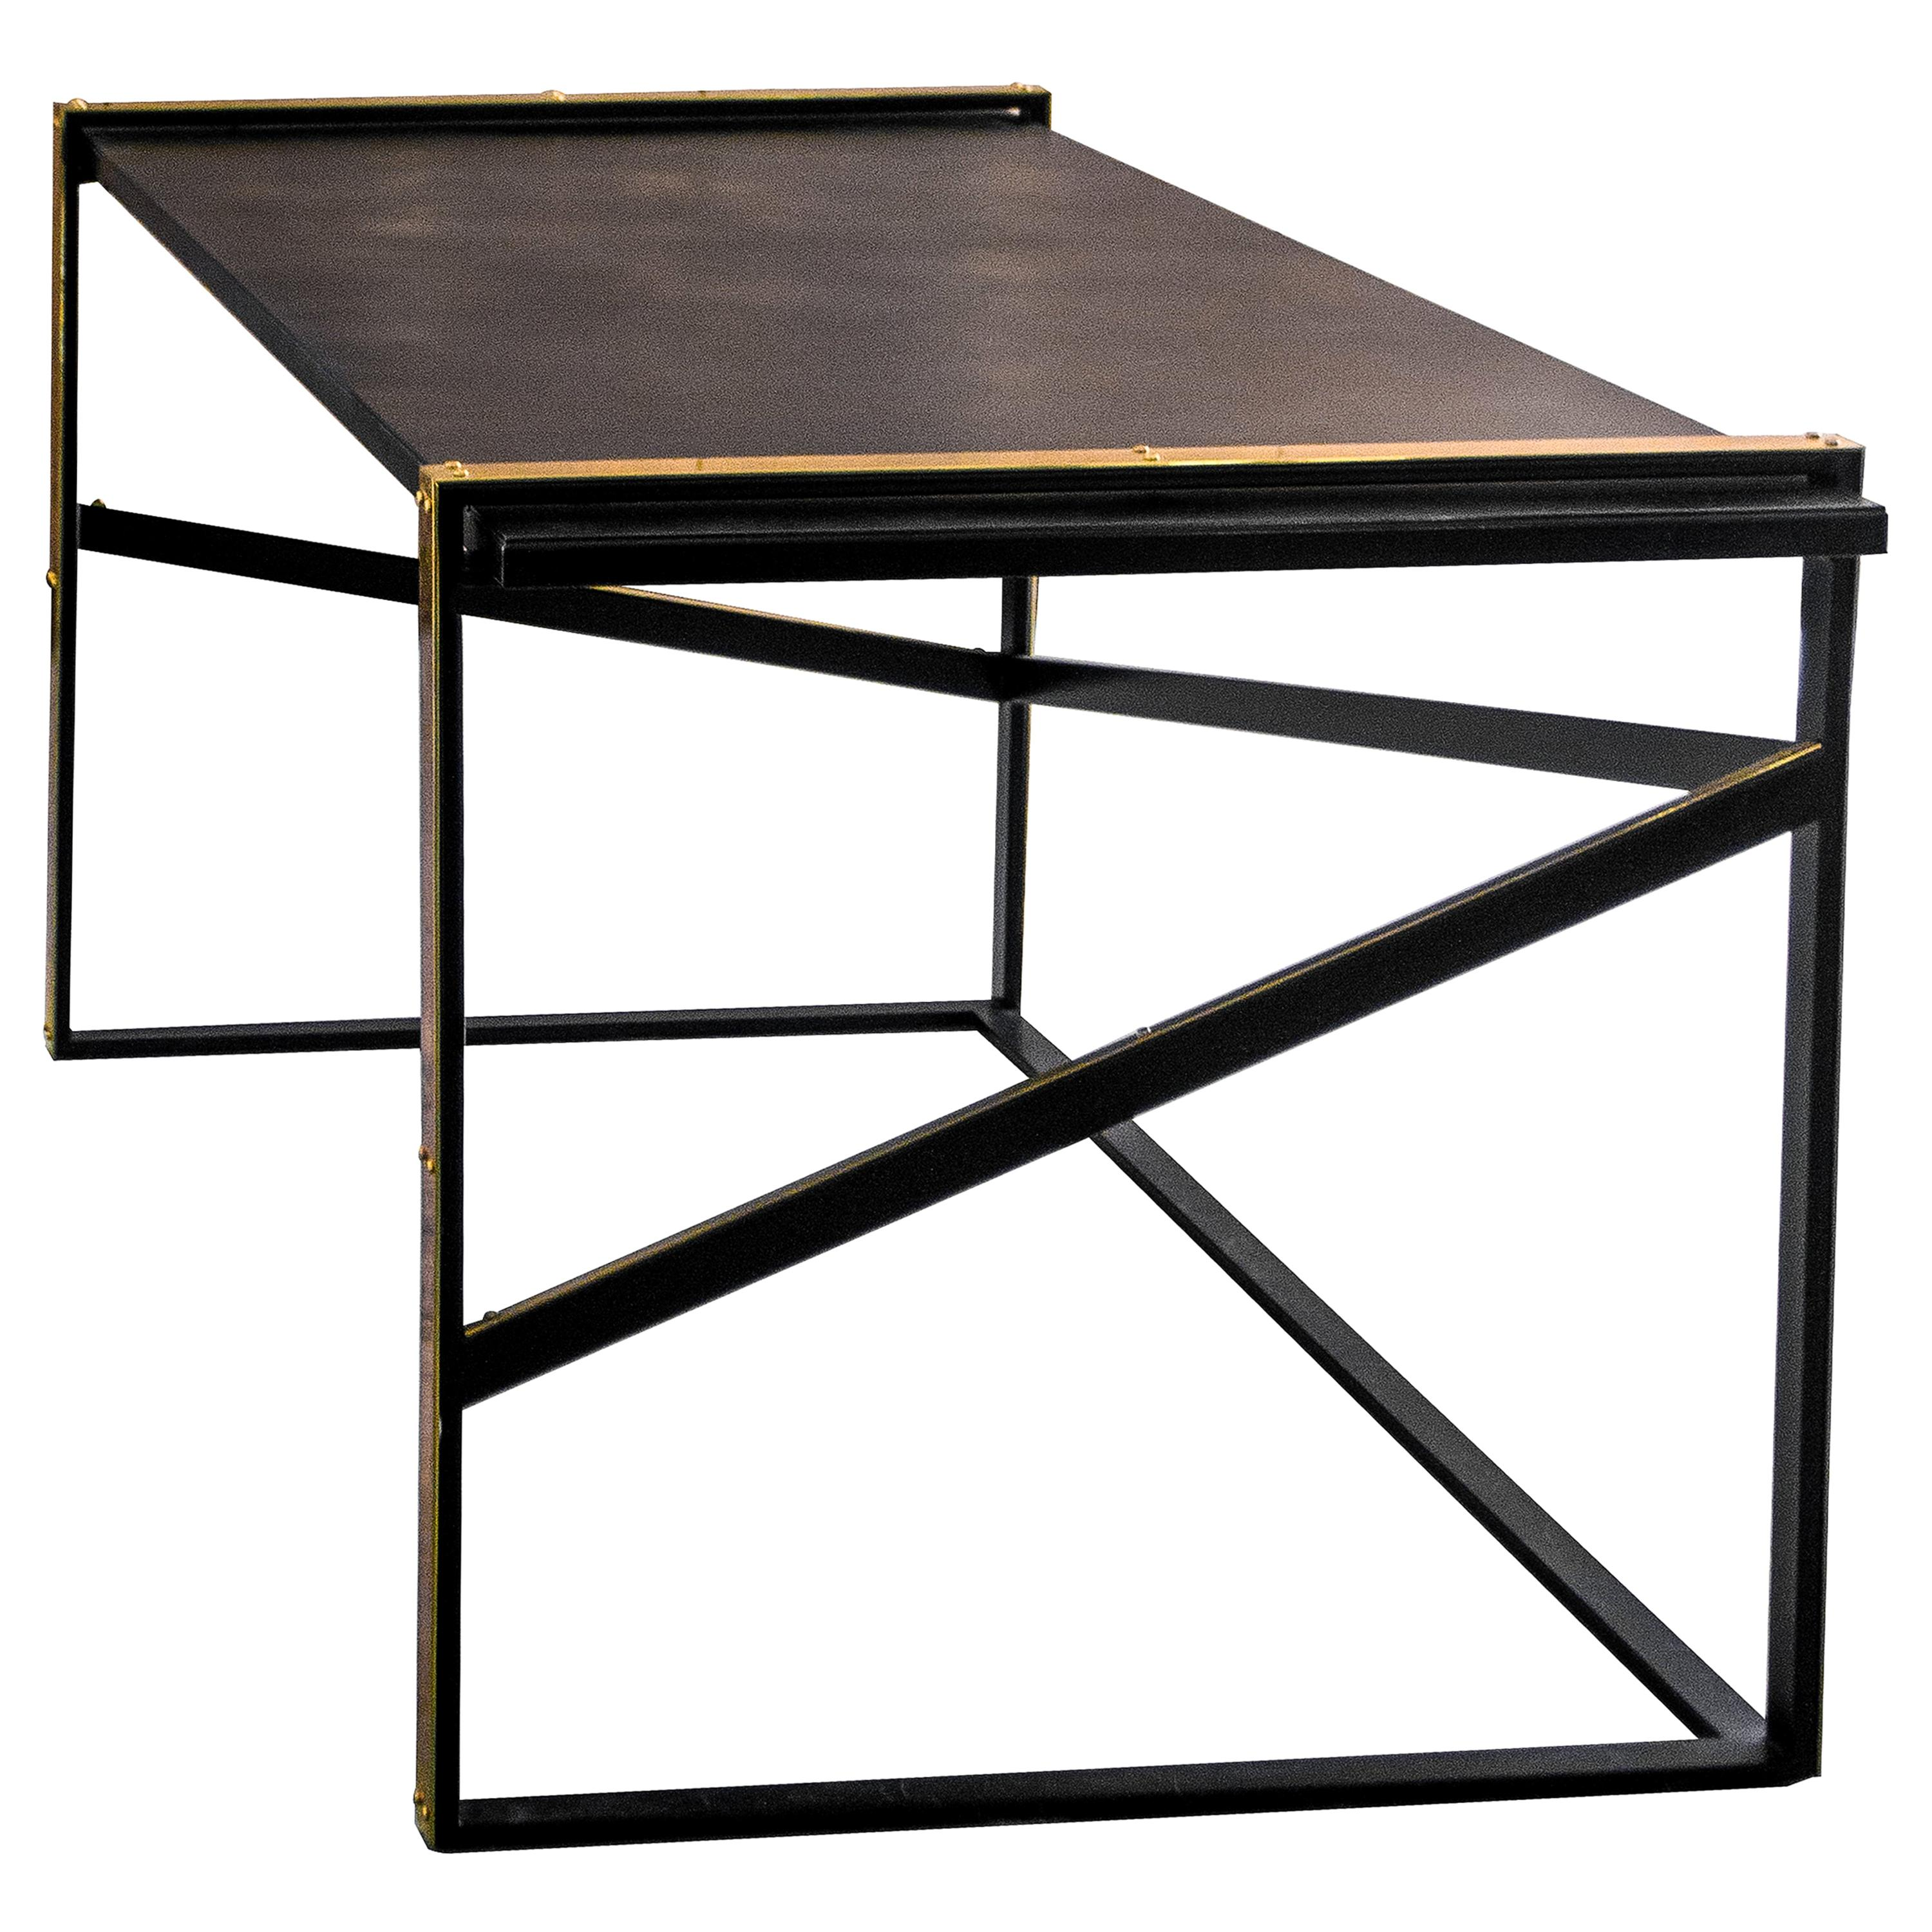 Robert Blackened Steel and Marble Desk with Brass Accents